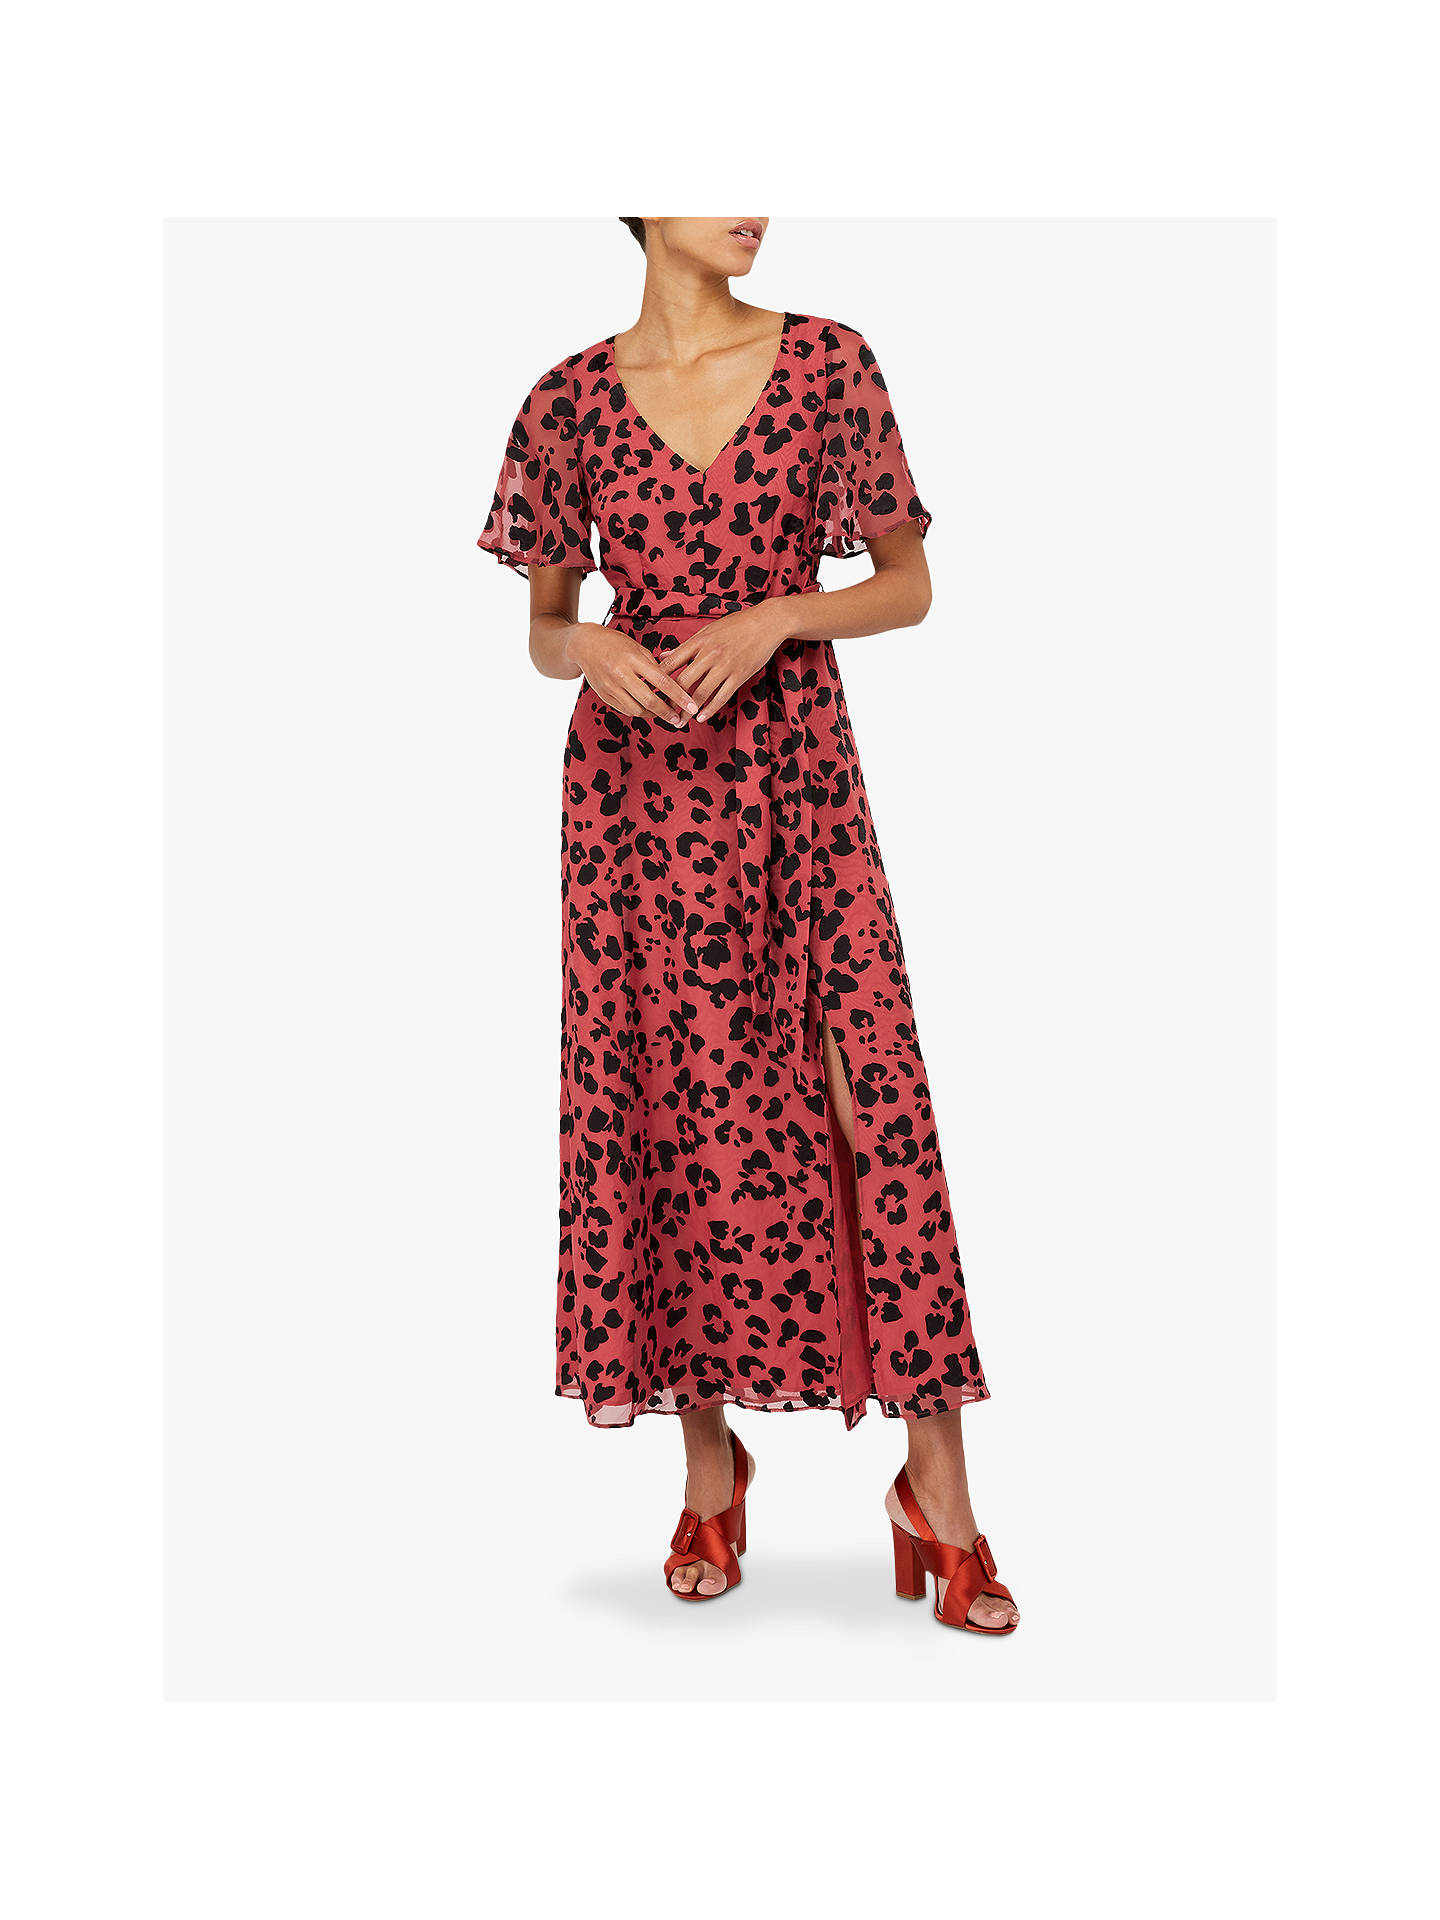 51f57657a Buy Monsoon Annie Animal Burnout Maxi Dress, Rust, 8 Online at  johnlewis.com ...